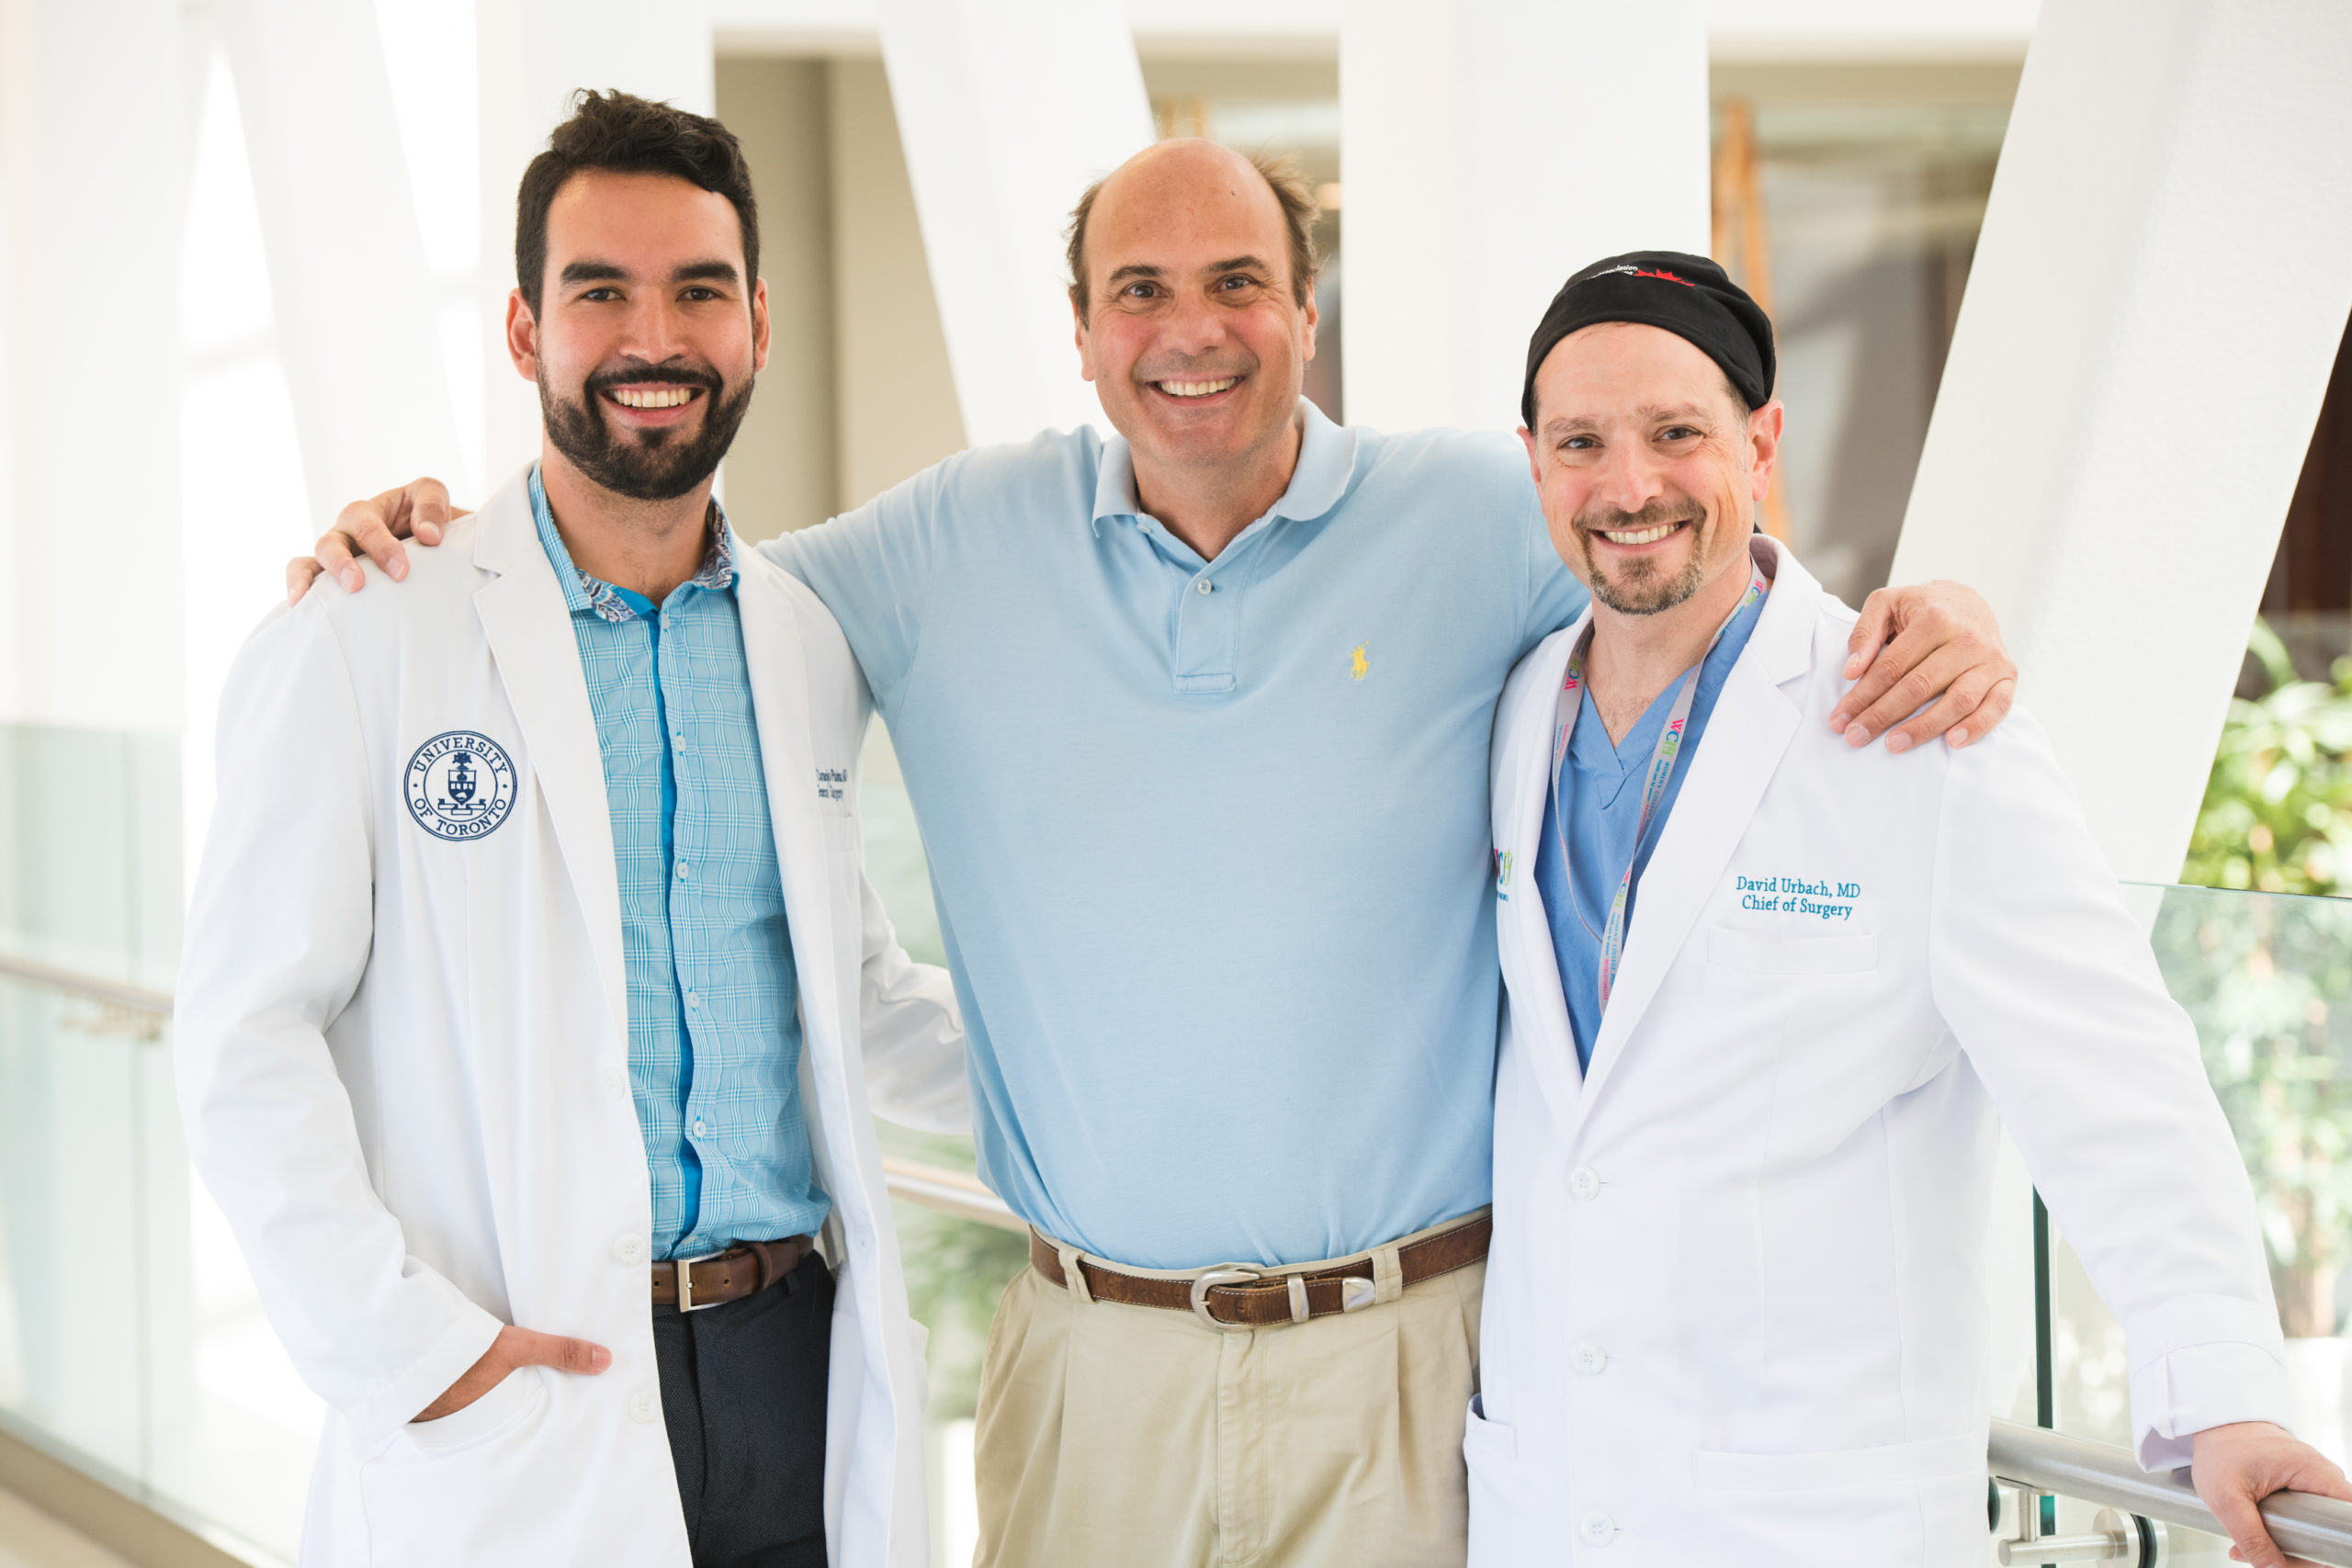 A picture of greg and 2 doctors